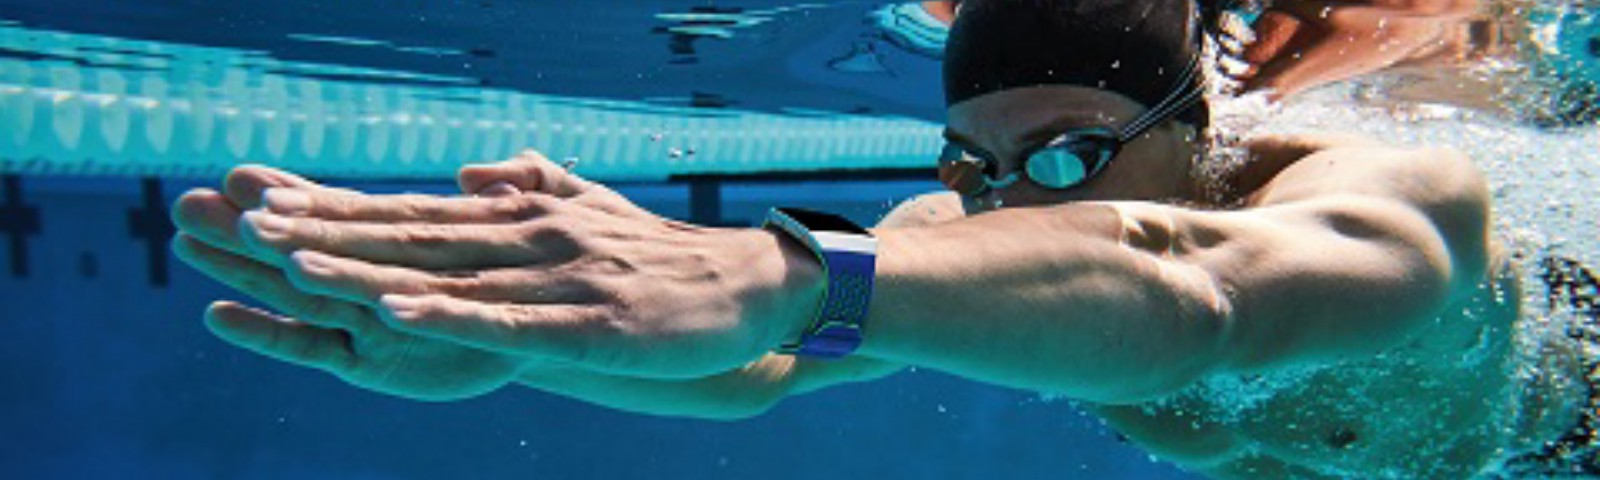 5 Best Android Swimming Apps Available in 2019 - Marco Nixon ...